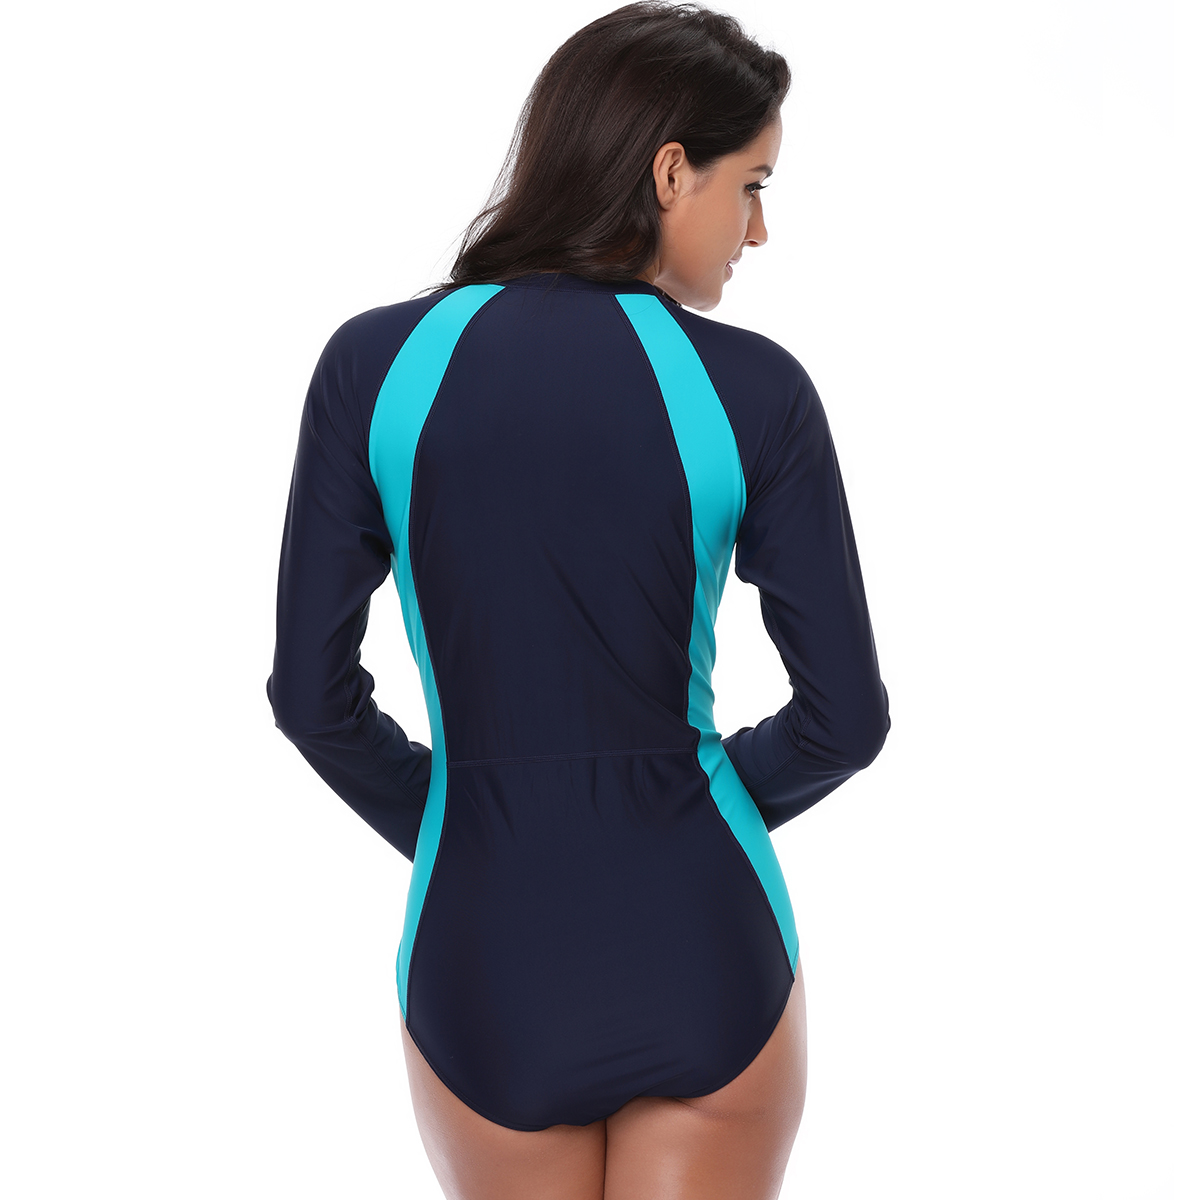 c6d12d4786242 Plus Size Swimwear Women UV Protection One Piece Swimsuit Long Sleeves  Beachwear Bathing Suit Beach Sportswear Surfing Suit-in Body Suits from  Sports ...